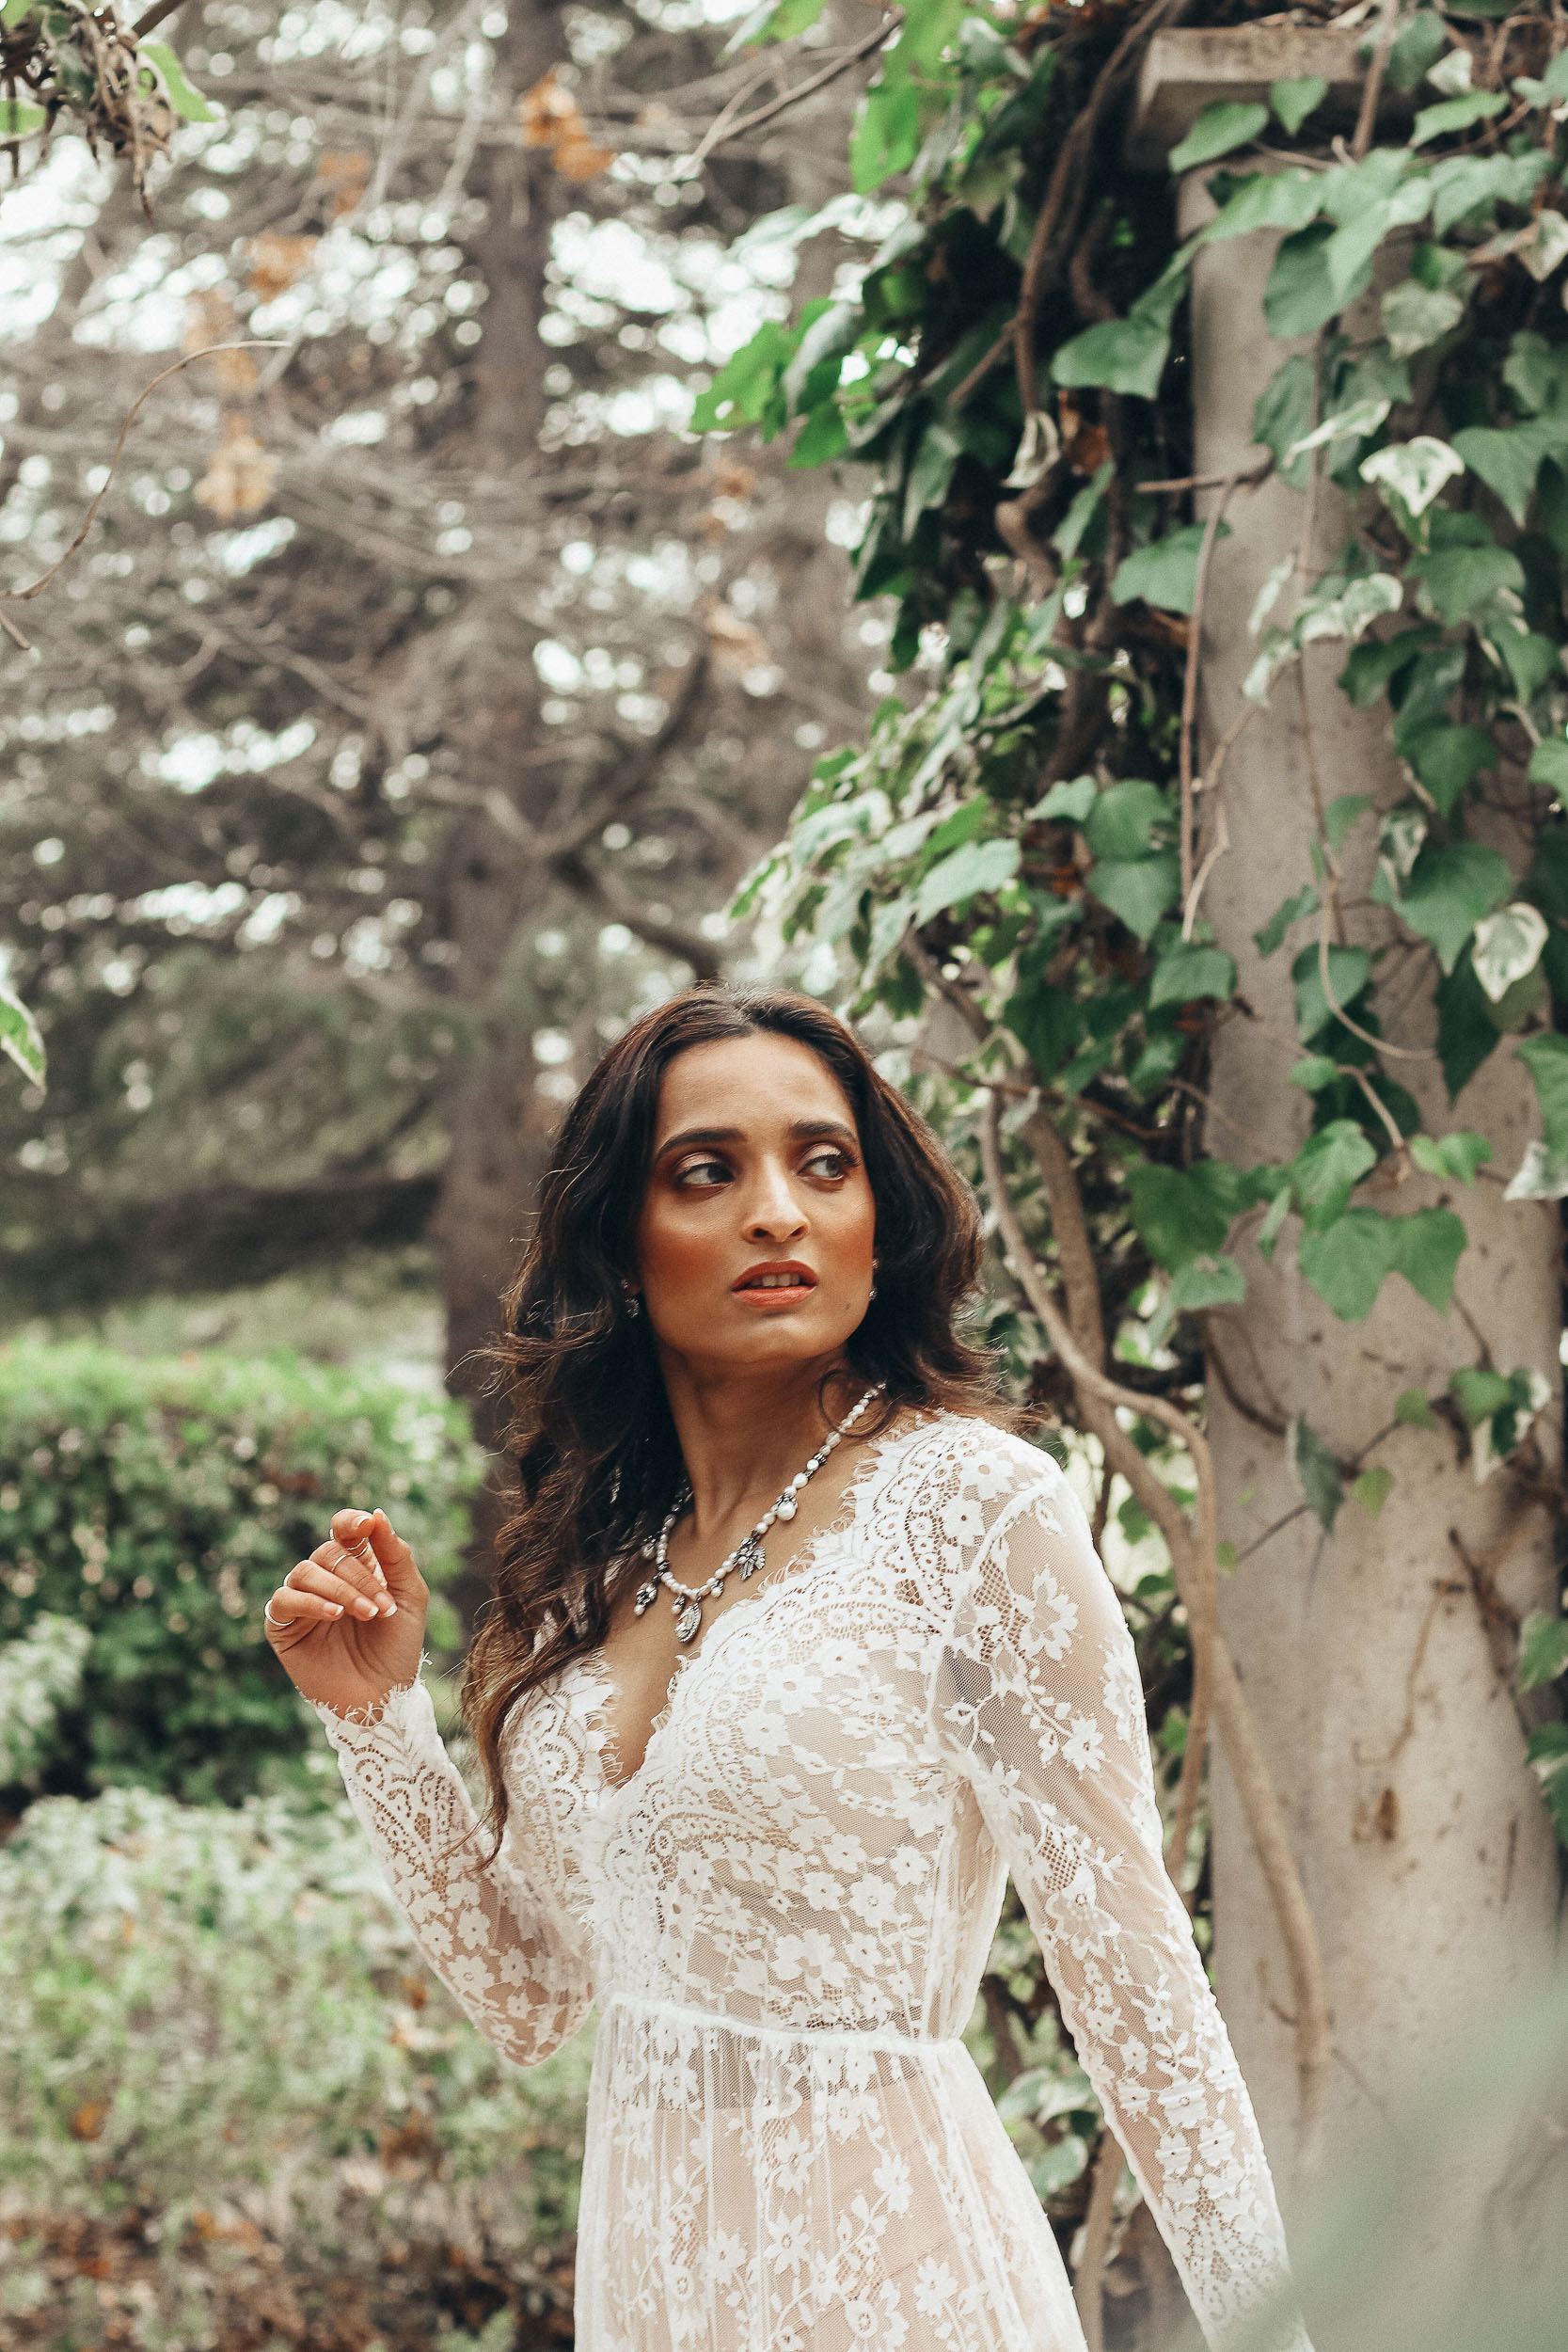 Girl standing in forest wearing white lace gown, moody shot-to discuss PMS and mental health